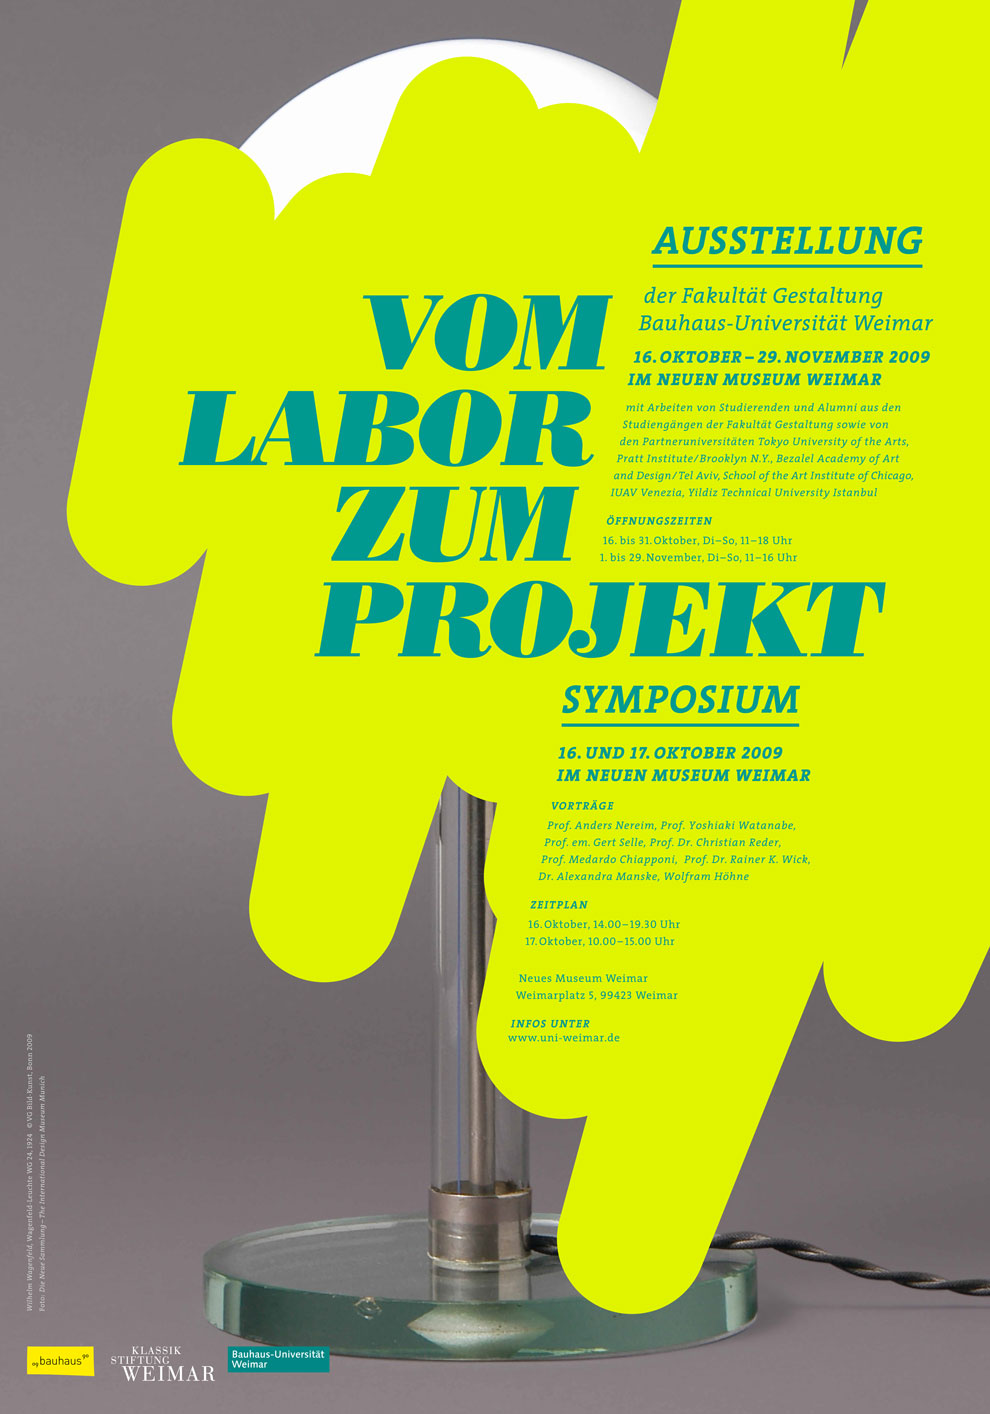 vom labor zum projekt, symposium & exhibit, autumn 2009